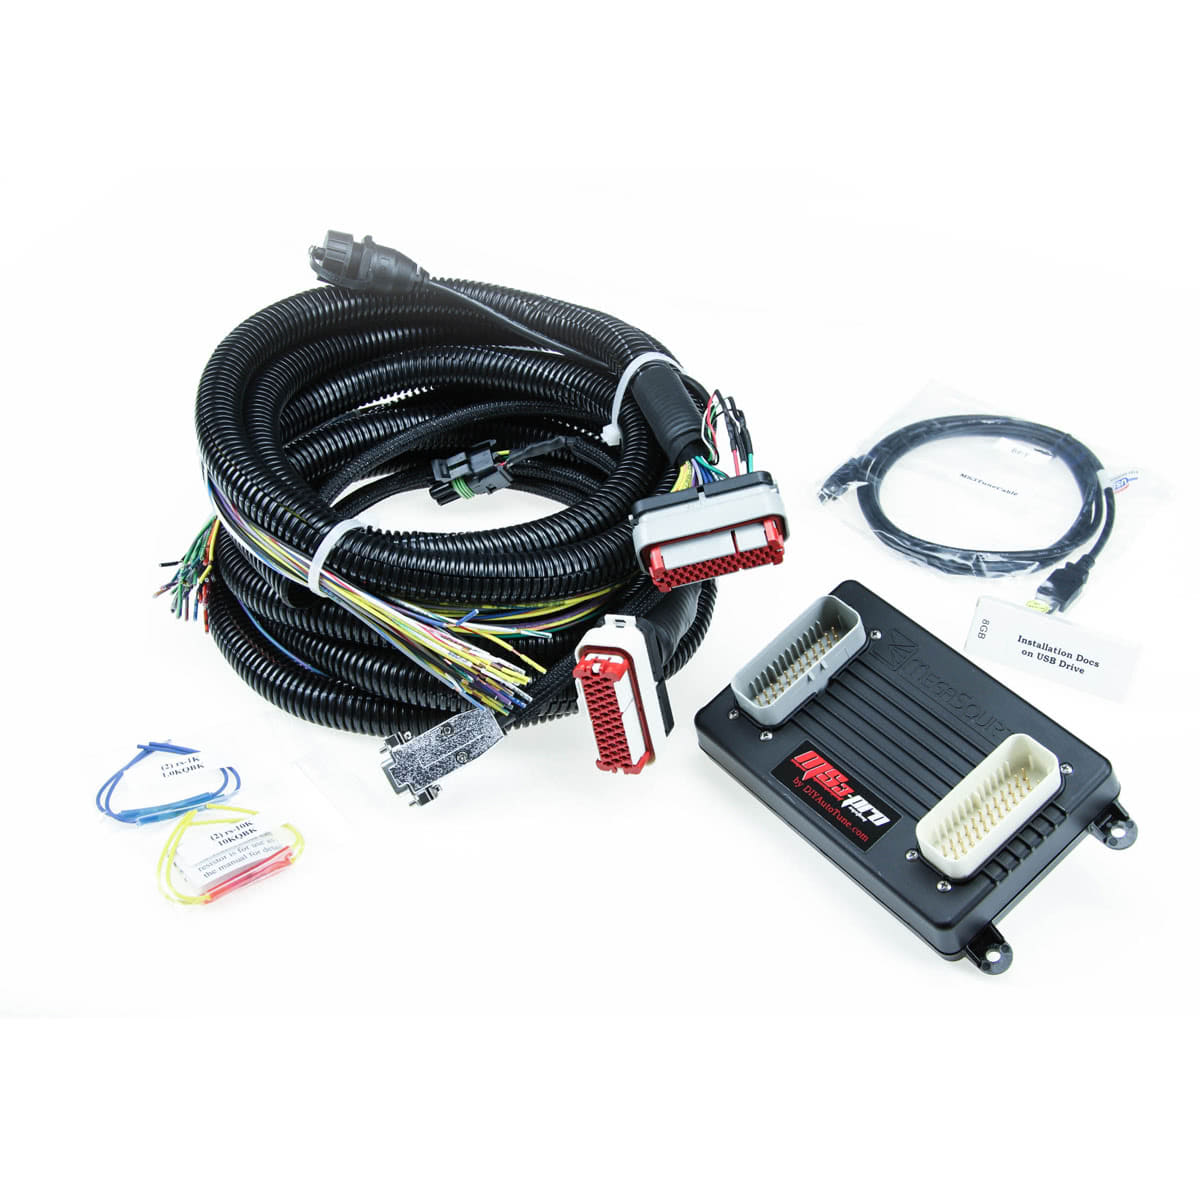 Gm Lt1 Wiring Harness Diagram Will Be A Thing 1996 Standalone Ms3pro Gen 1 Ecu With 8 1994 Engine